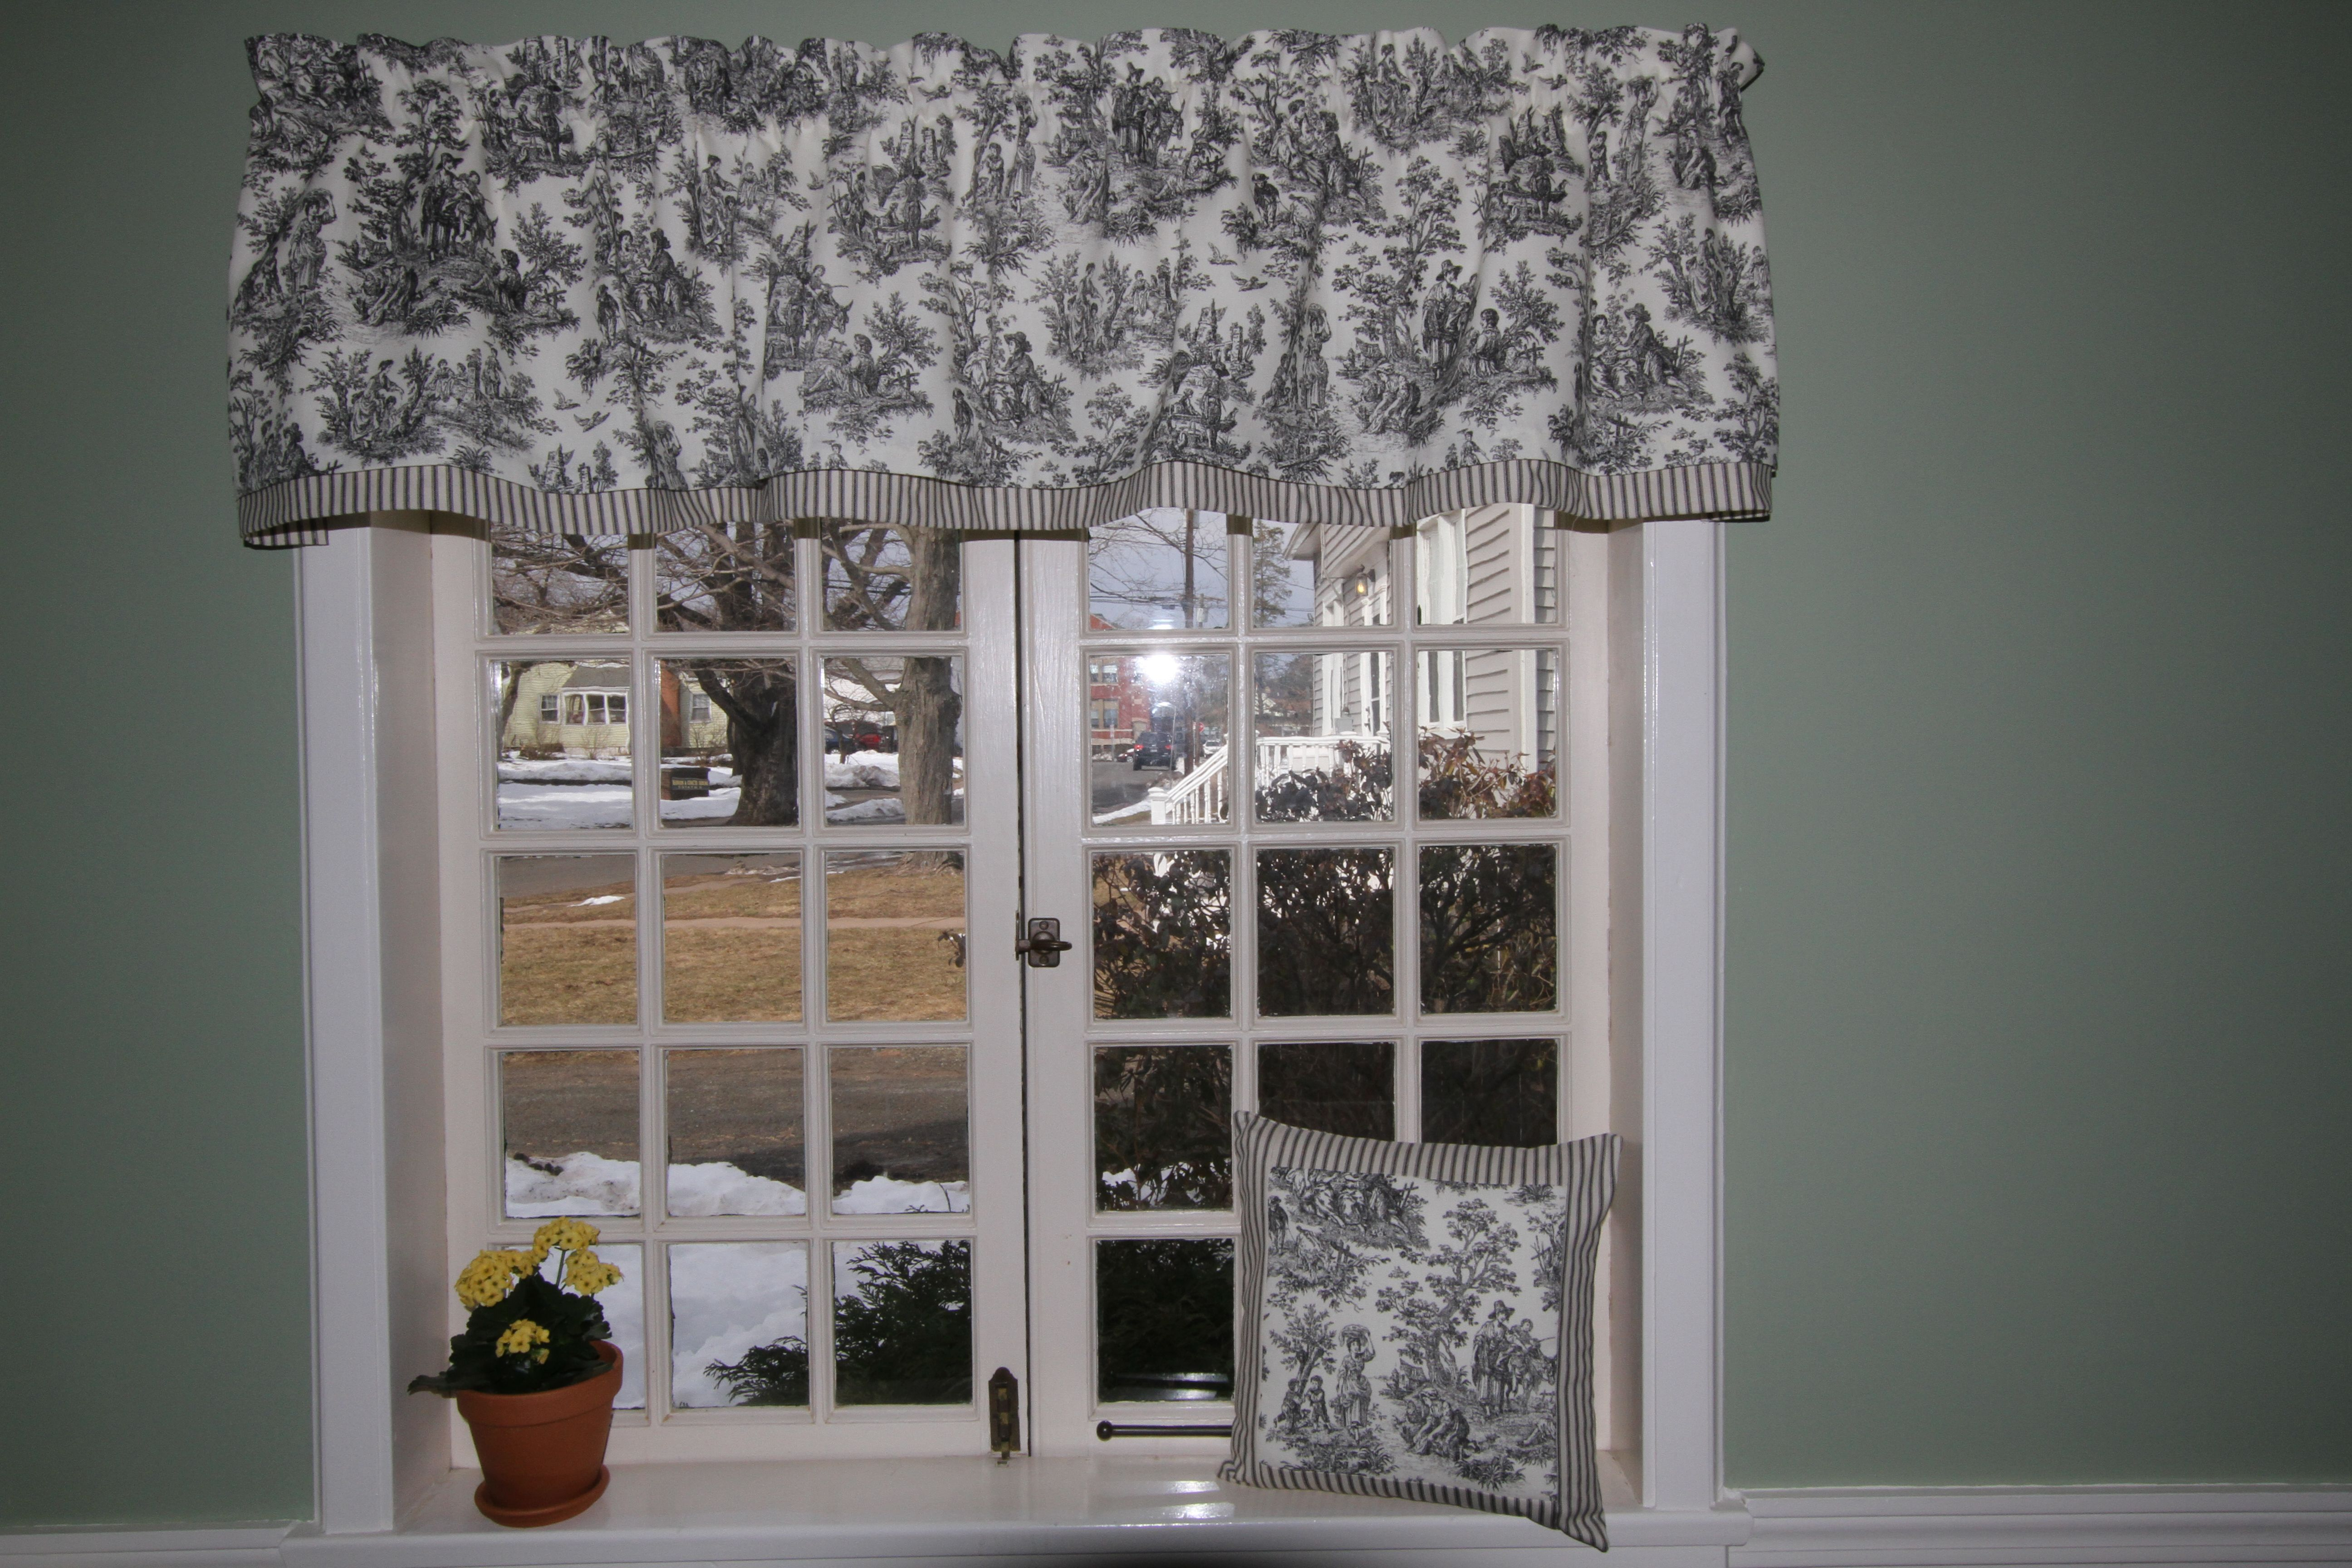 Black  White Toile Waverly valance As seen in The Country